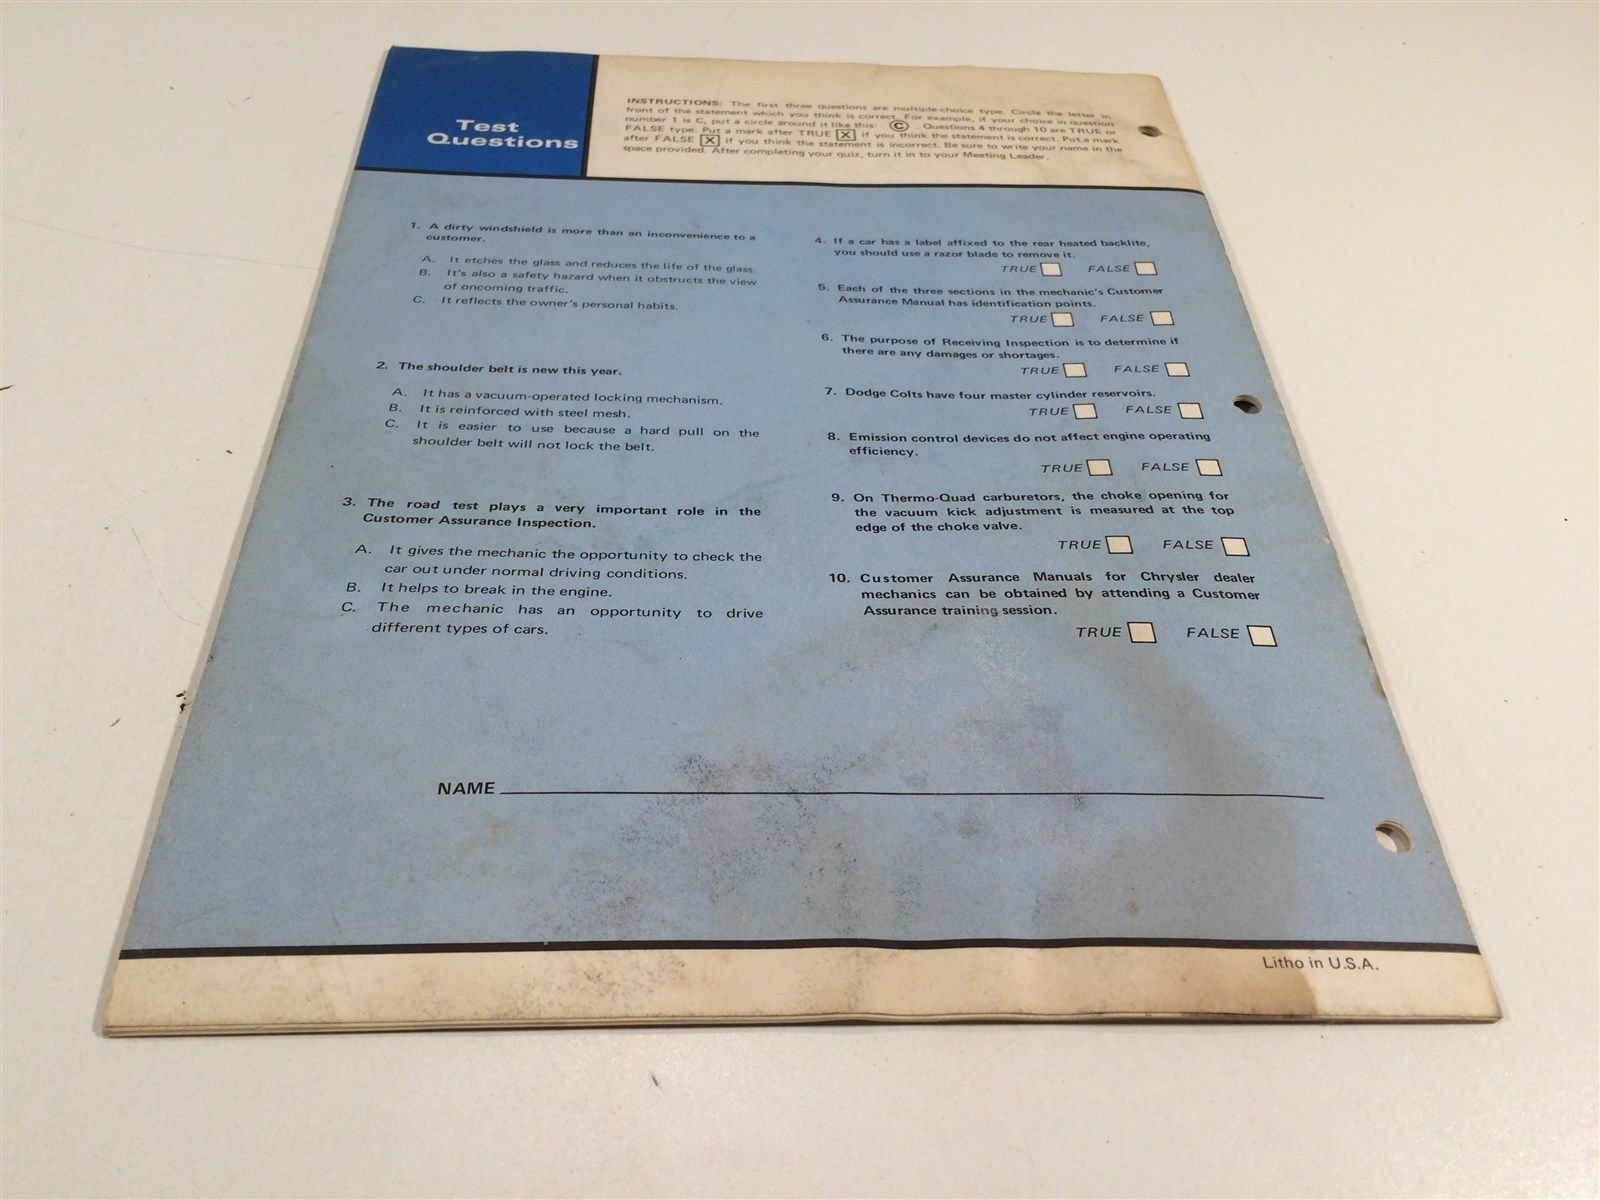 Chrysler Master Technicians Service Reference Book 758 75 8 Customer Assurance